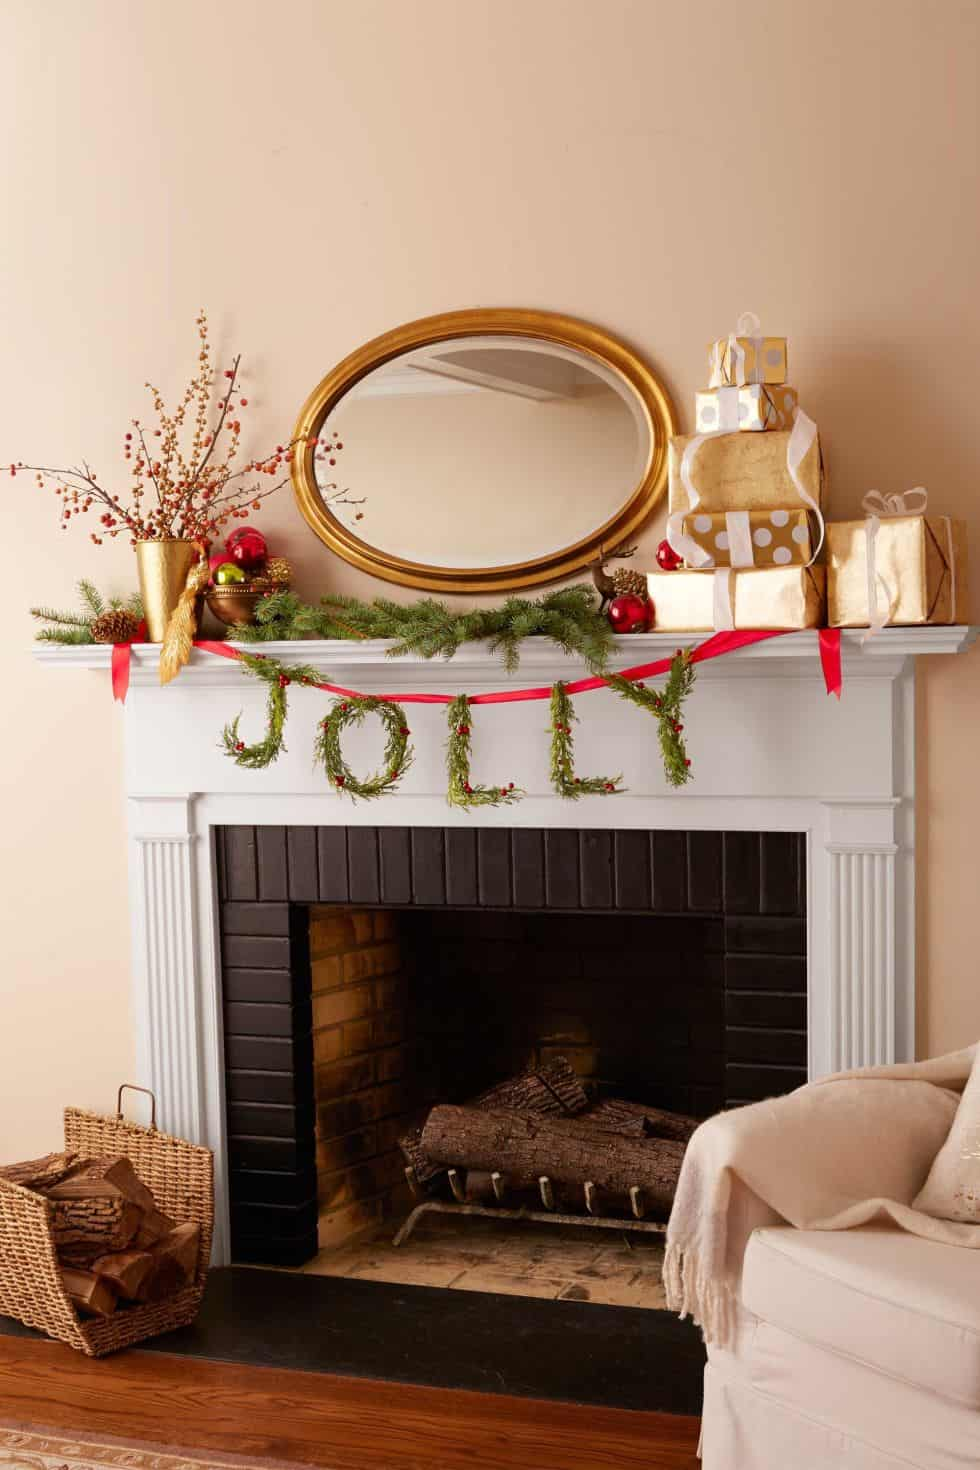 Diy jolly holiday garland